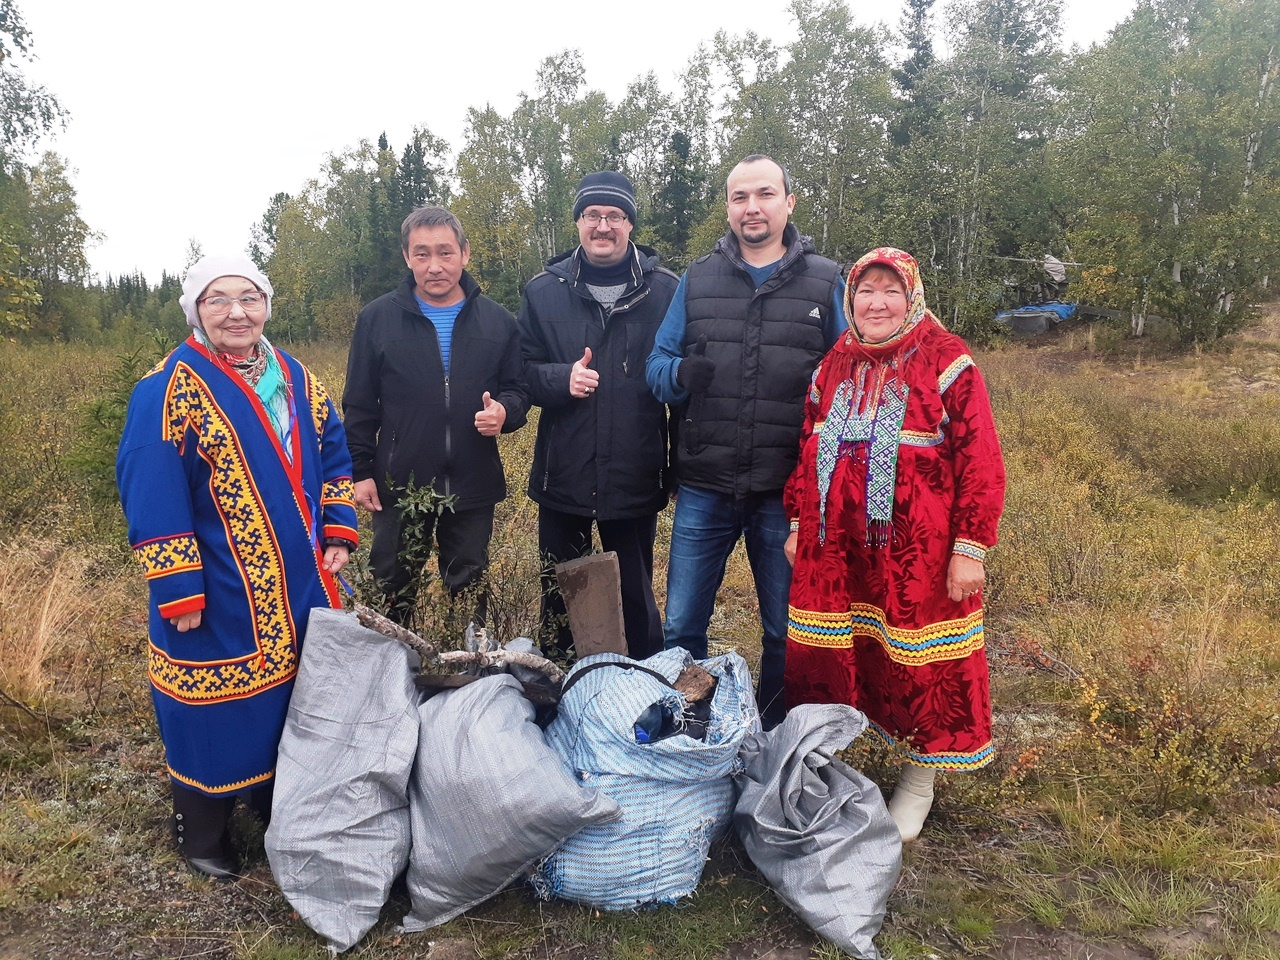 jTWxRdojmVs - National level envionronment protection action took place in Yamal area of Siberia.